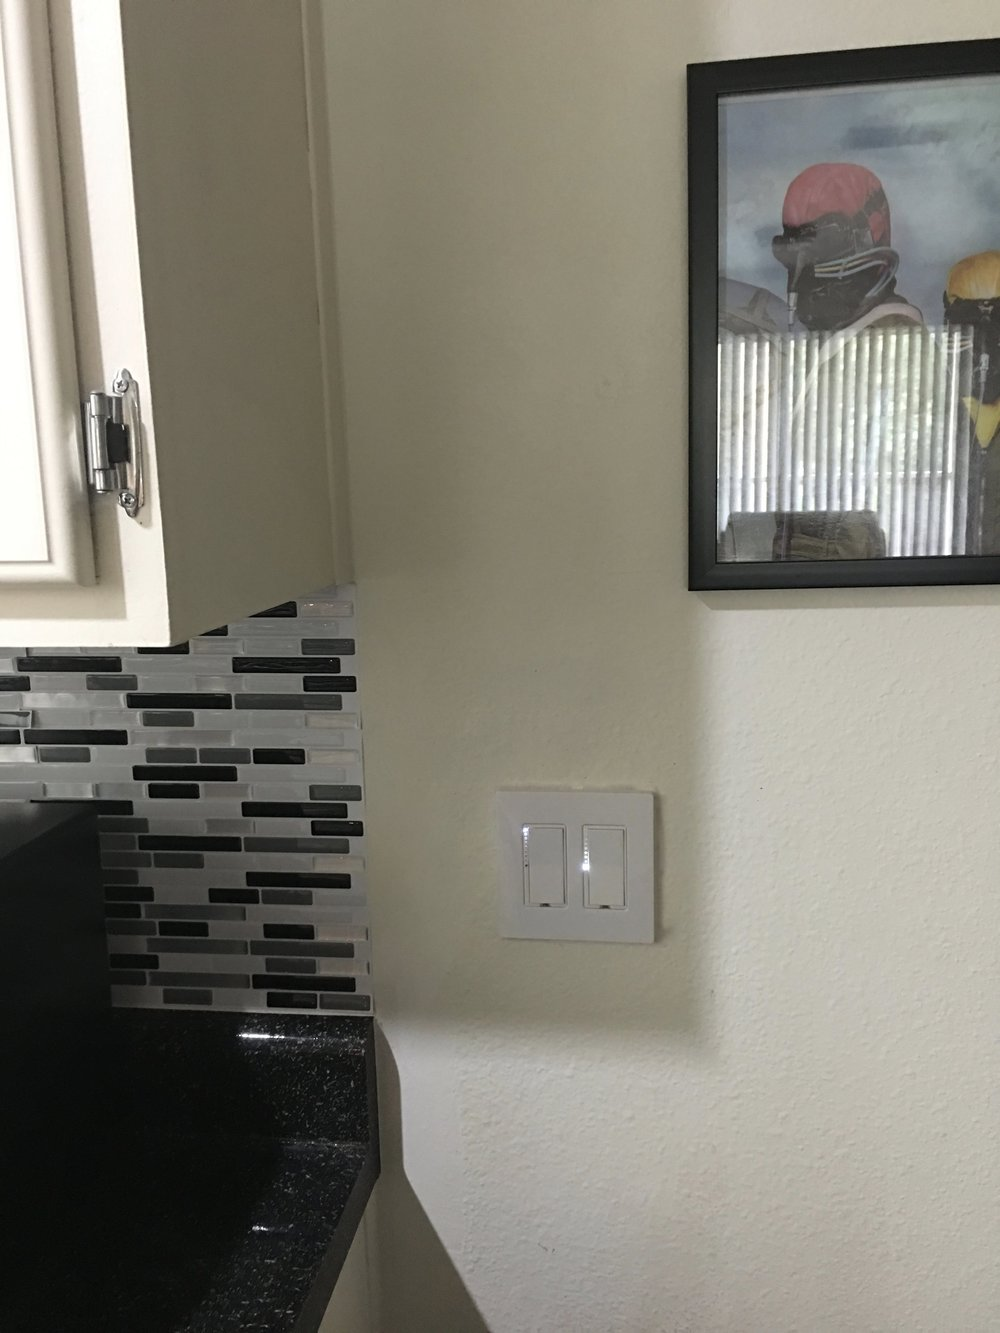 Insteon switches controlling kitchen and office space